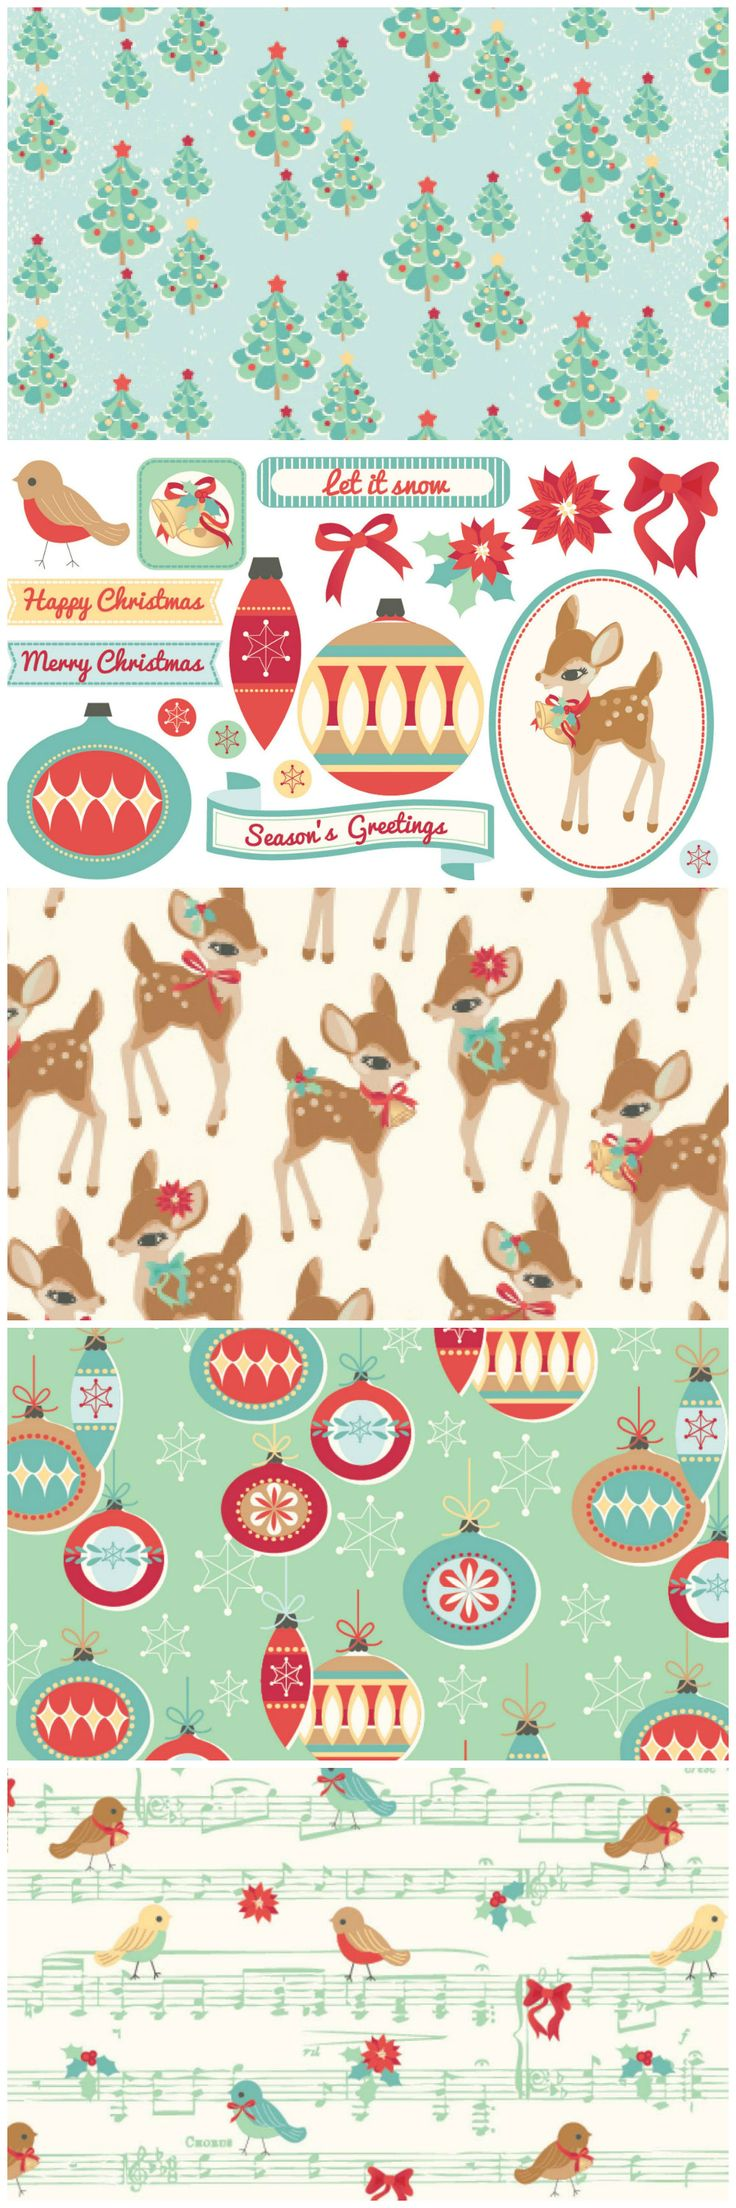 Make beautiful retro Christmas cards using our free digital papers.